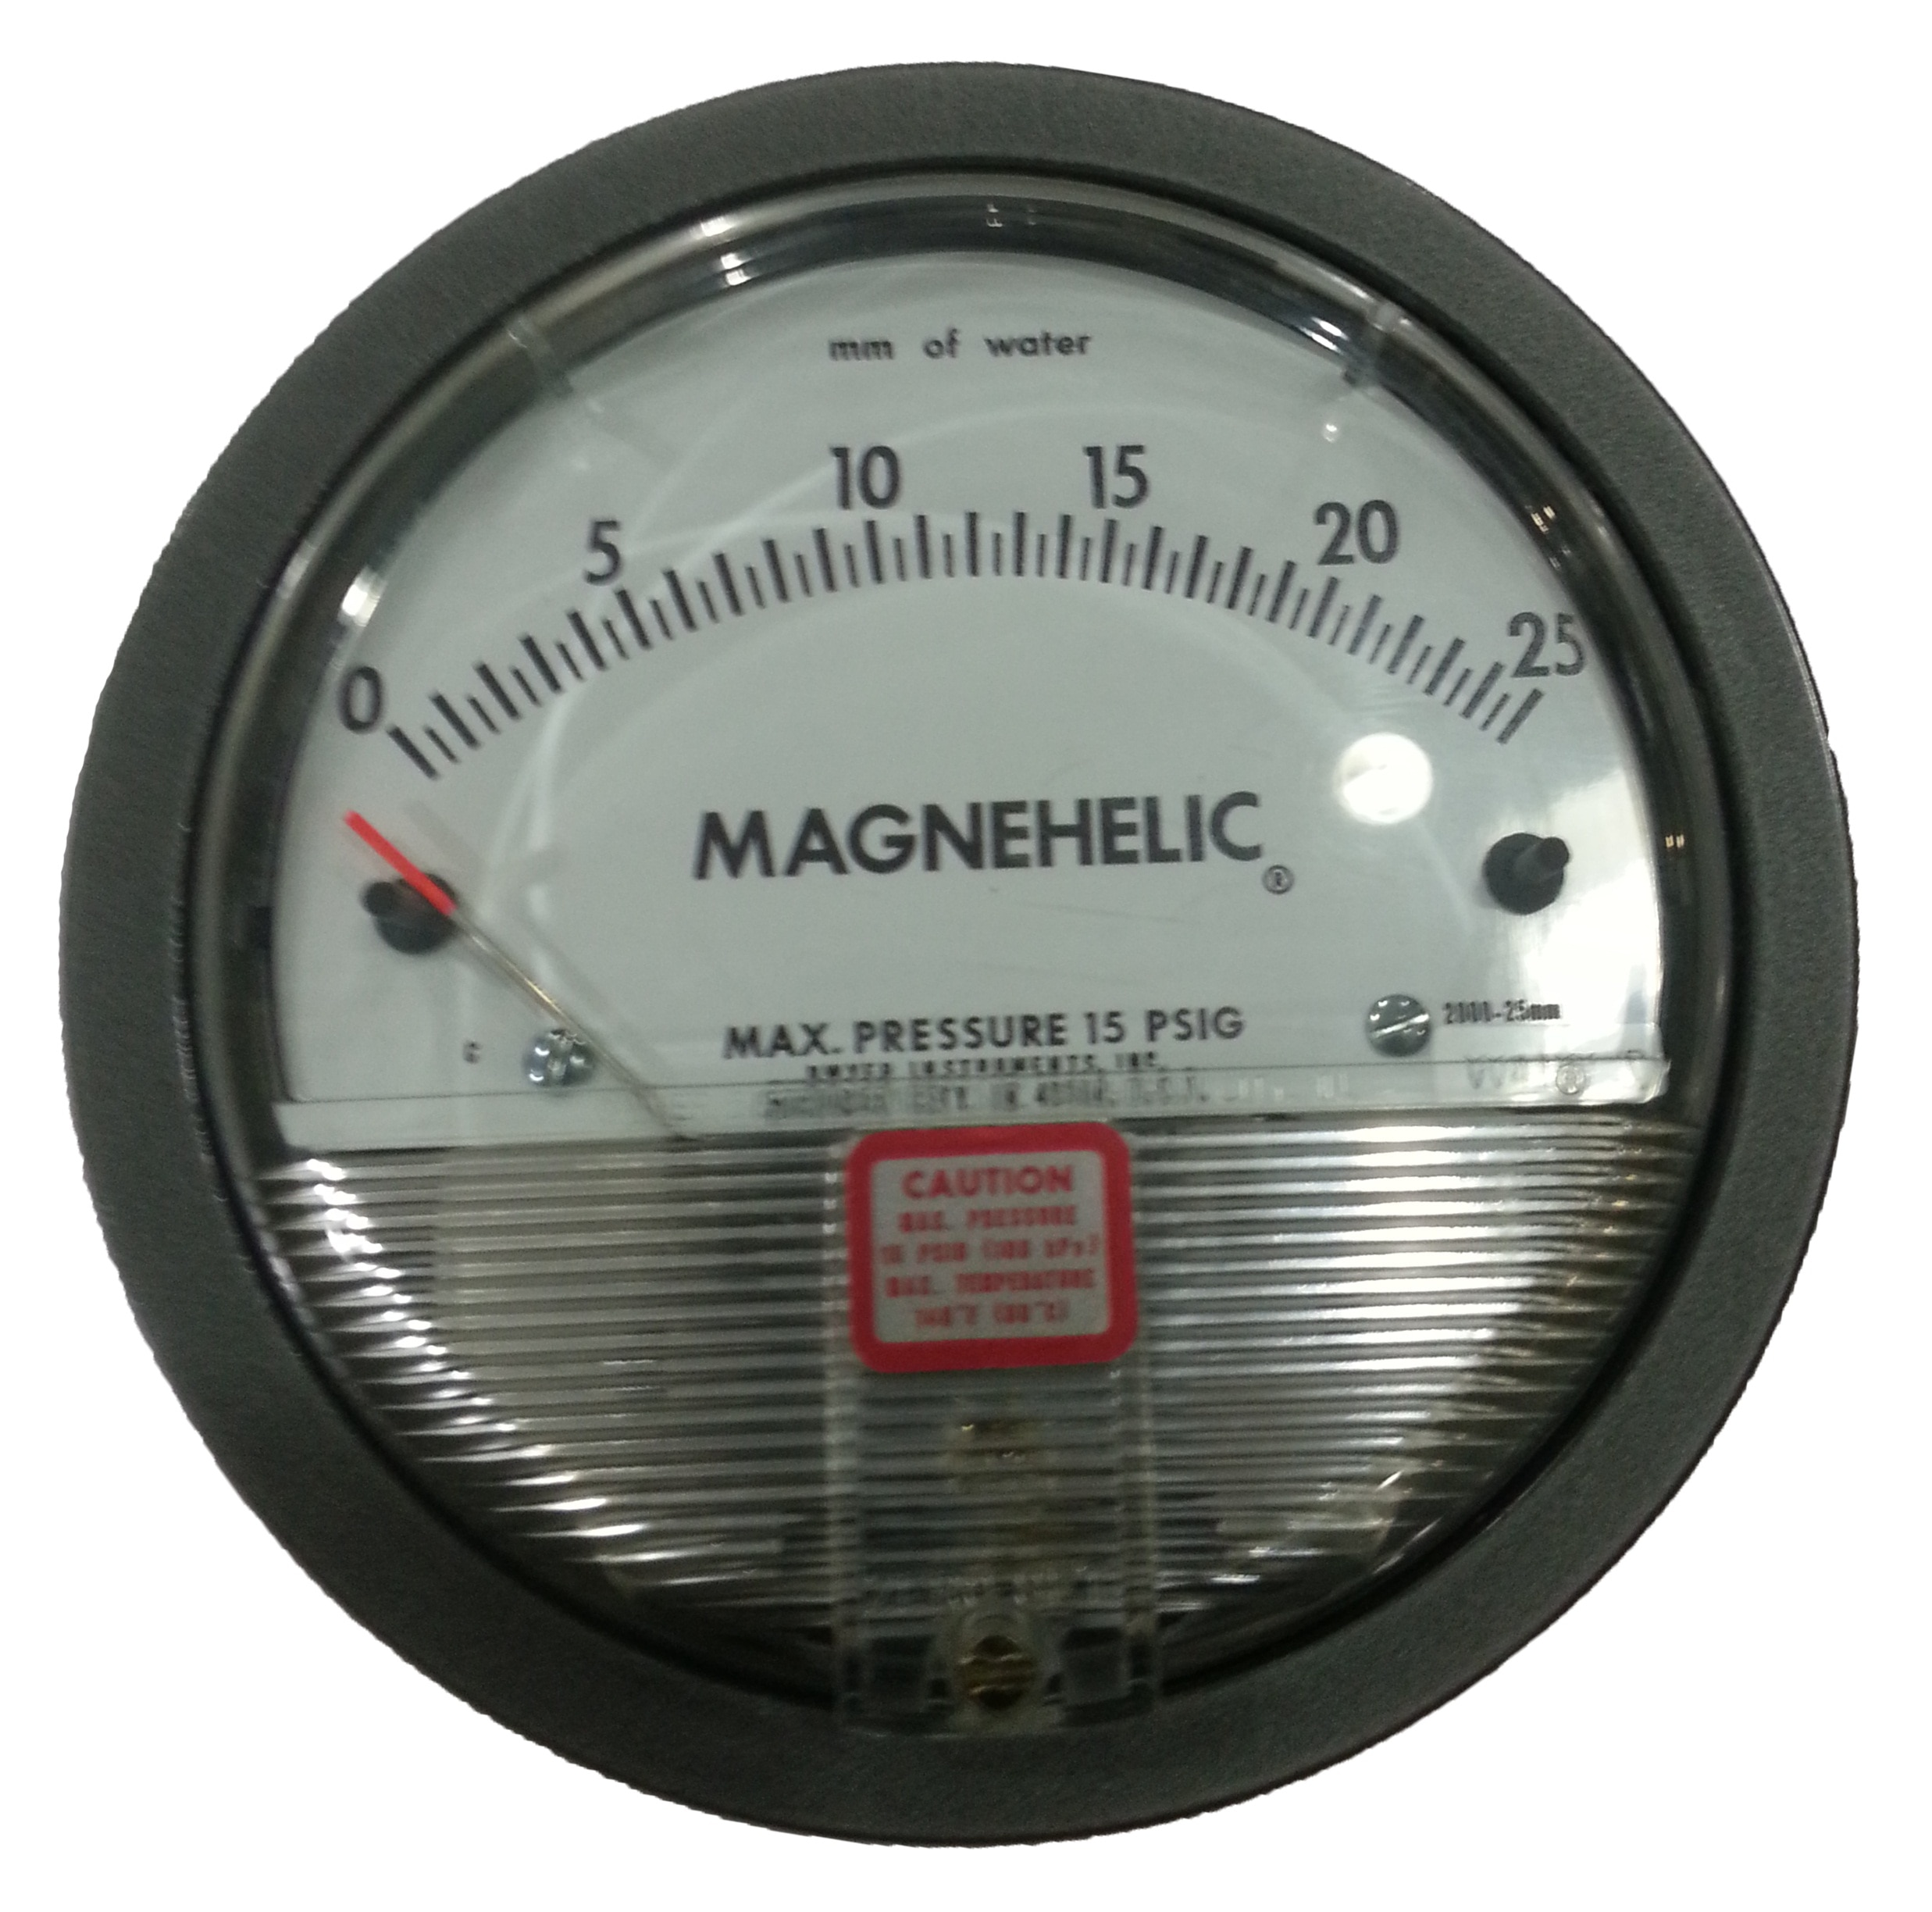 Select the Magnehelic® gage for high accuracy--guaranteed within 2% of full scale--and for the wide choice of 81 models available to suit your needs precisely. Using Dwyer's simple, frictionless Magnehelic® gage movement, it quickly indicates low air or non-corrosive gas pressures--either positive, negative (vacuum) or differential. The design resists shock, vibration and over-pressures. No manometer fluid to evaporate, freeze or cause toxic or leveling problems. It's inexpensive, too.  The Magnehelic® gage is the industry standard to measure fan and blower pressures, filter resistance, air velocity, furnace draft, pressure drop across orifice plates, liquid levels with bubbler systems and pressures in fluid amplifier or fluidic systems. It also checks gas-air ratio controls and automatic valves, and monitors blood and respiratory pressures in medical care equipment.  Note: May be used with Hydrogen. Order a Buna-N diaphragm. Pressures must be less than 35 psi.  Product Applications:  Filter Monitoring Air Velocity with Dwyer Pitot Tube Blower Vacuum Monitoring Fan Pressure Indication Duct, Room or Building Pressures Clean Room Positive Pressure Indication